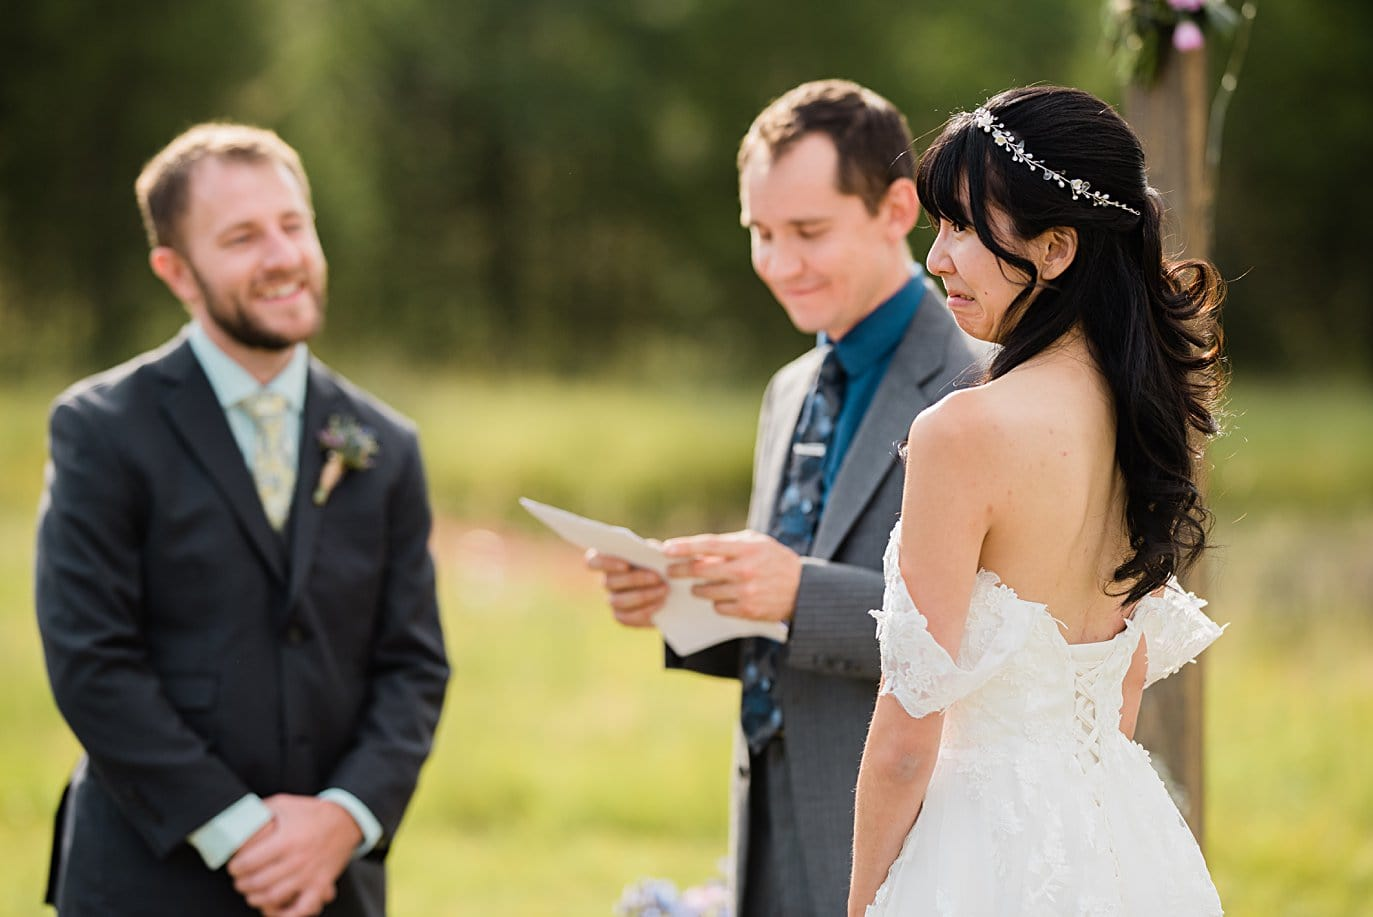 bride and groom share jokes during wedding ceremony at intimate Grand Lake wedding by Denver wedding photographer Jennie Crate